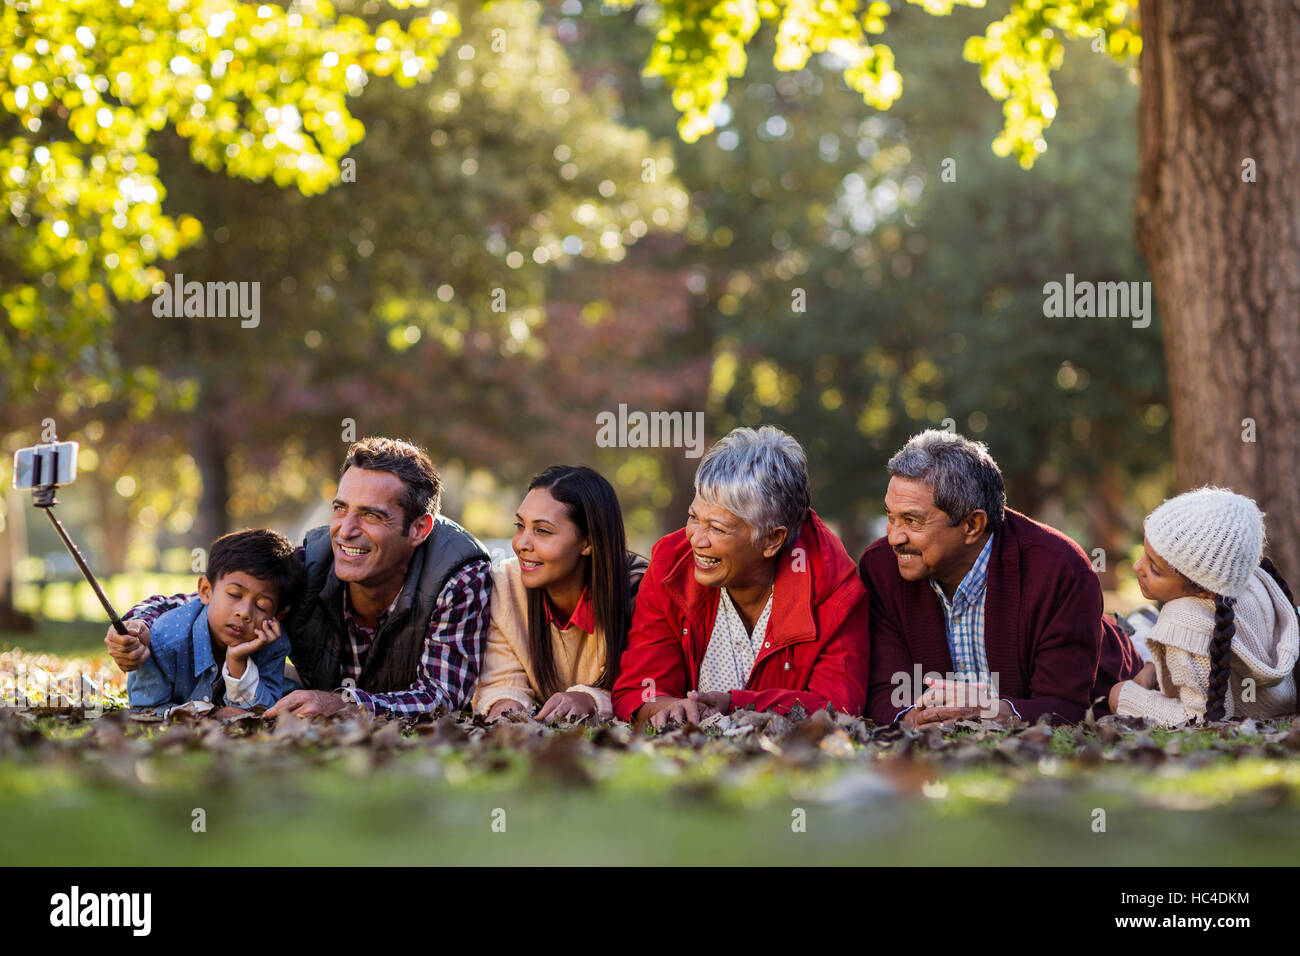 Man with happy family taking selfie - Stock Image